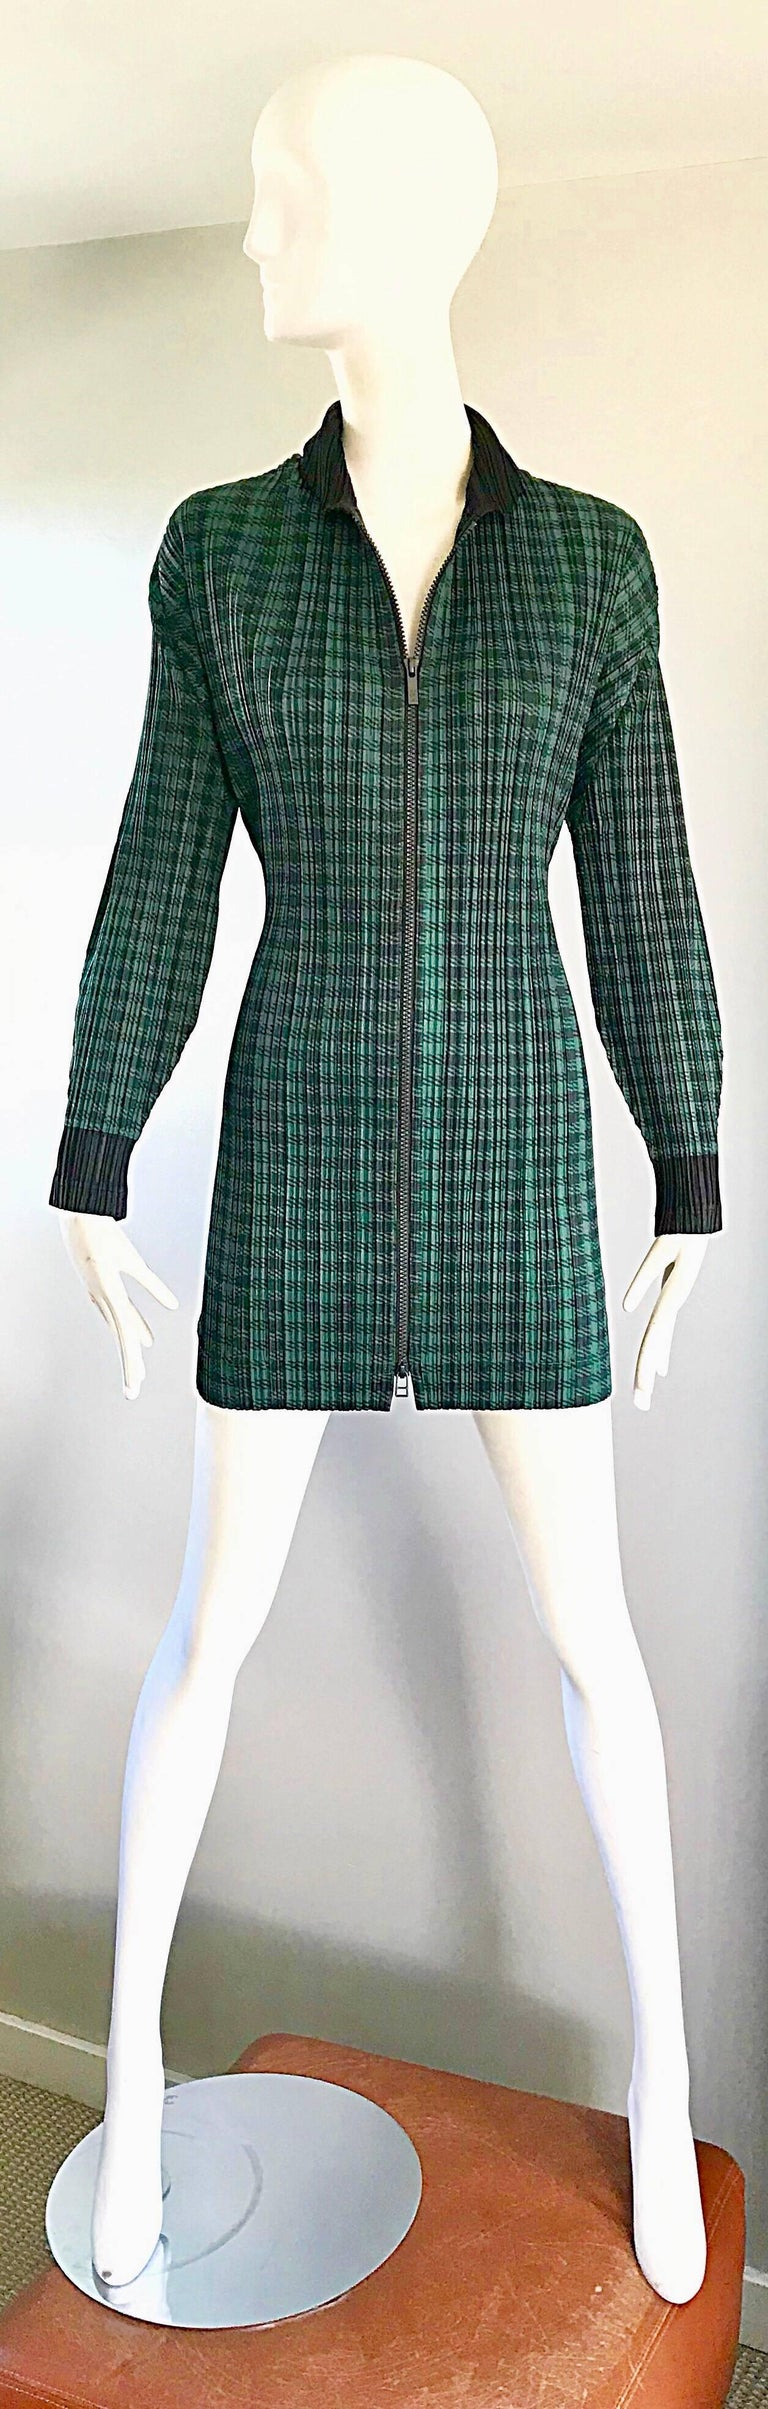 Vintage Issey Miyake Pleats Please 90s Green Black Checkered Jacket Mini Dress For Sale 5